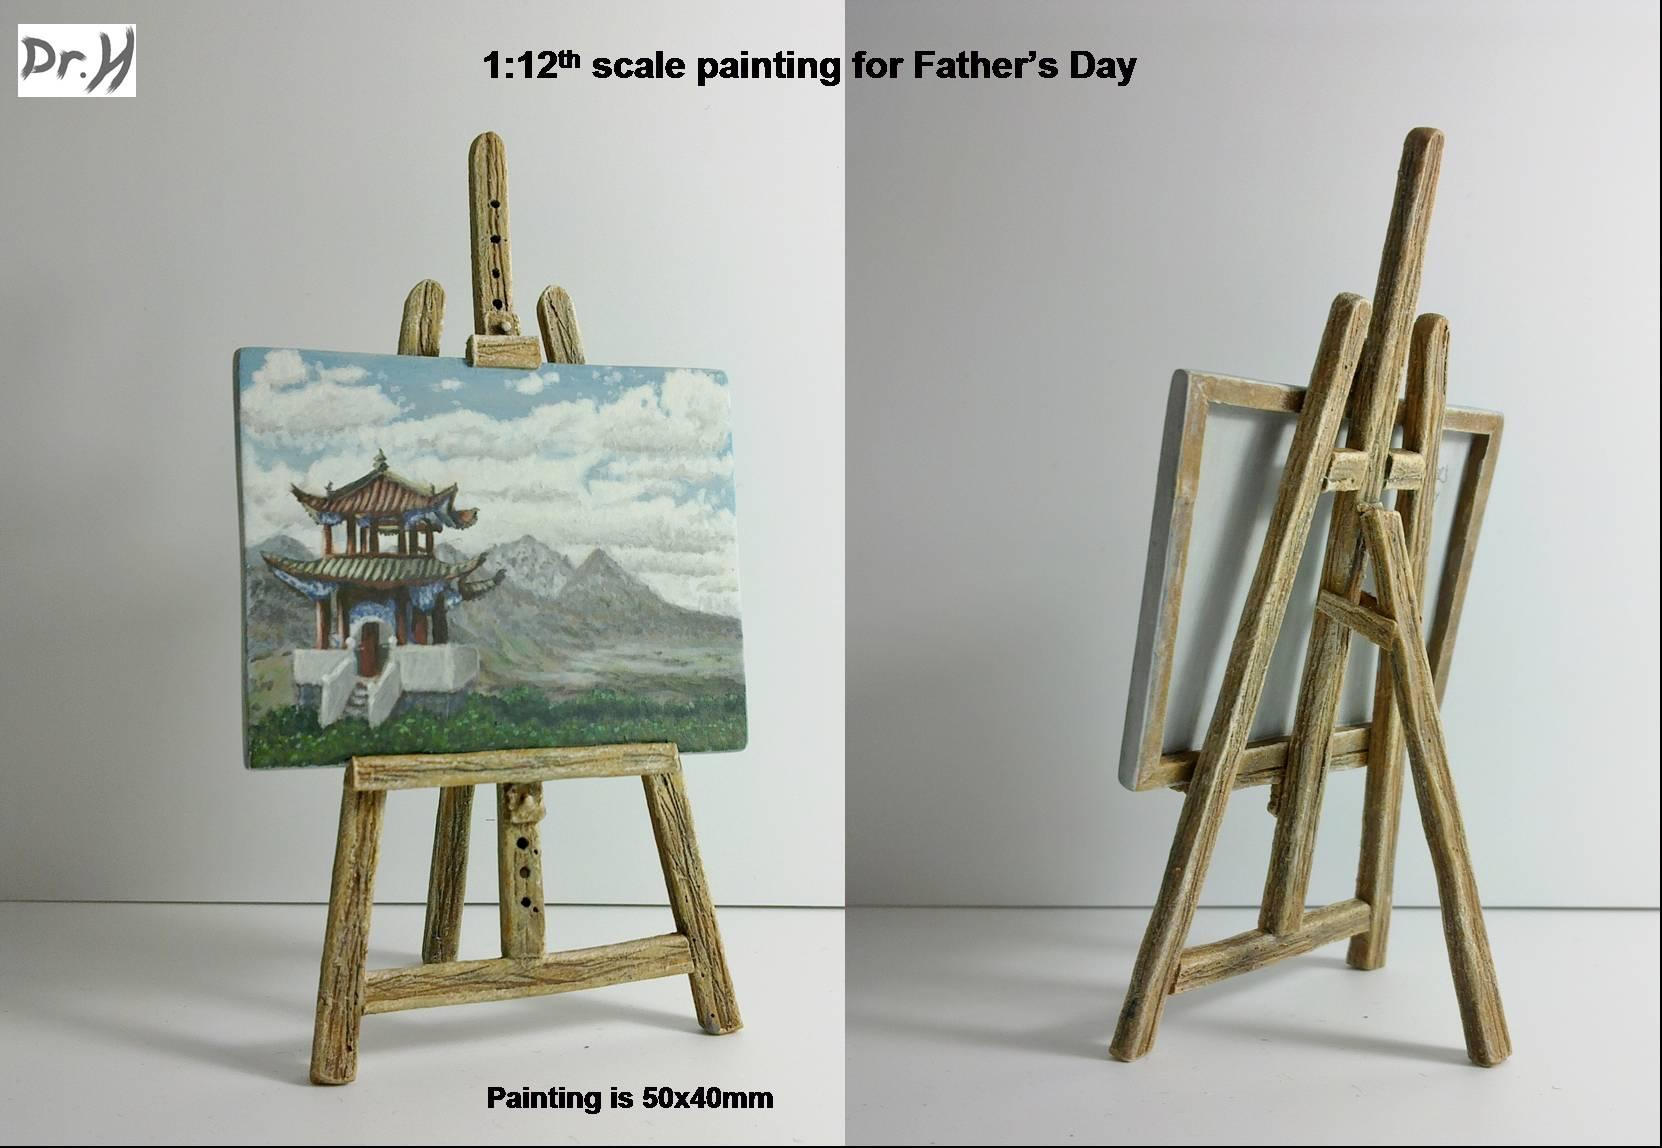 1:12 scale painting and easel for Father's Day